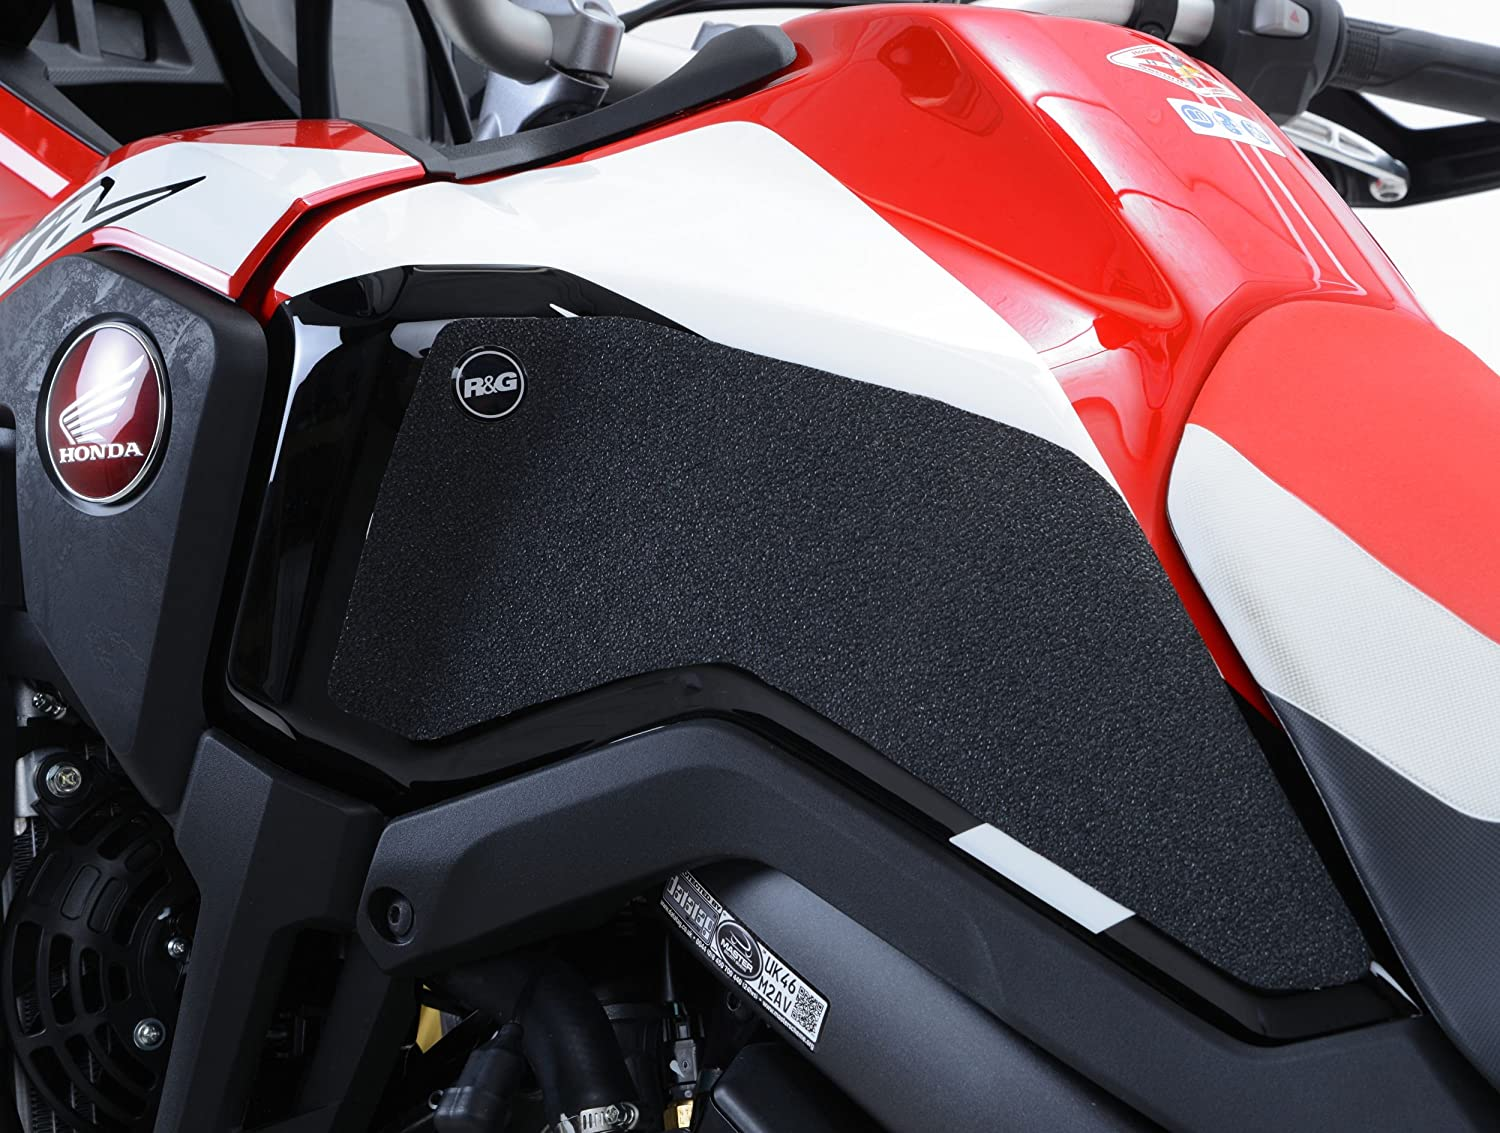 R/&G Tank Traction Grips For Honda Africa Twin CRF1000L 16-17 Clear 2-Piece Kit